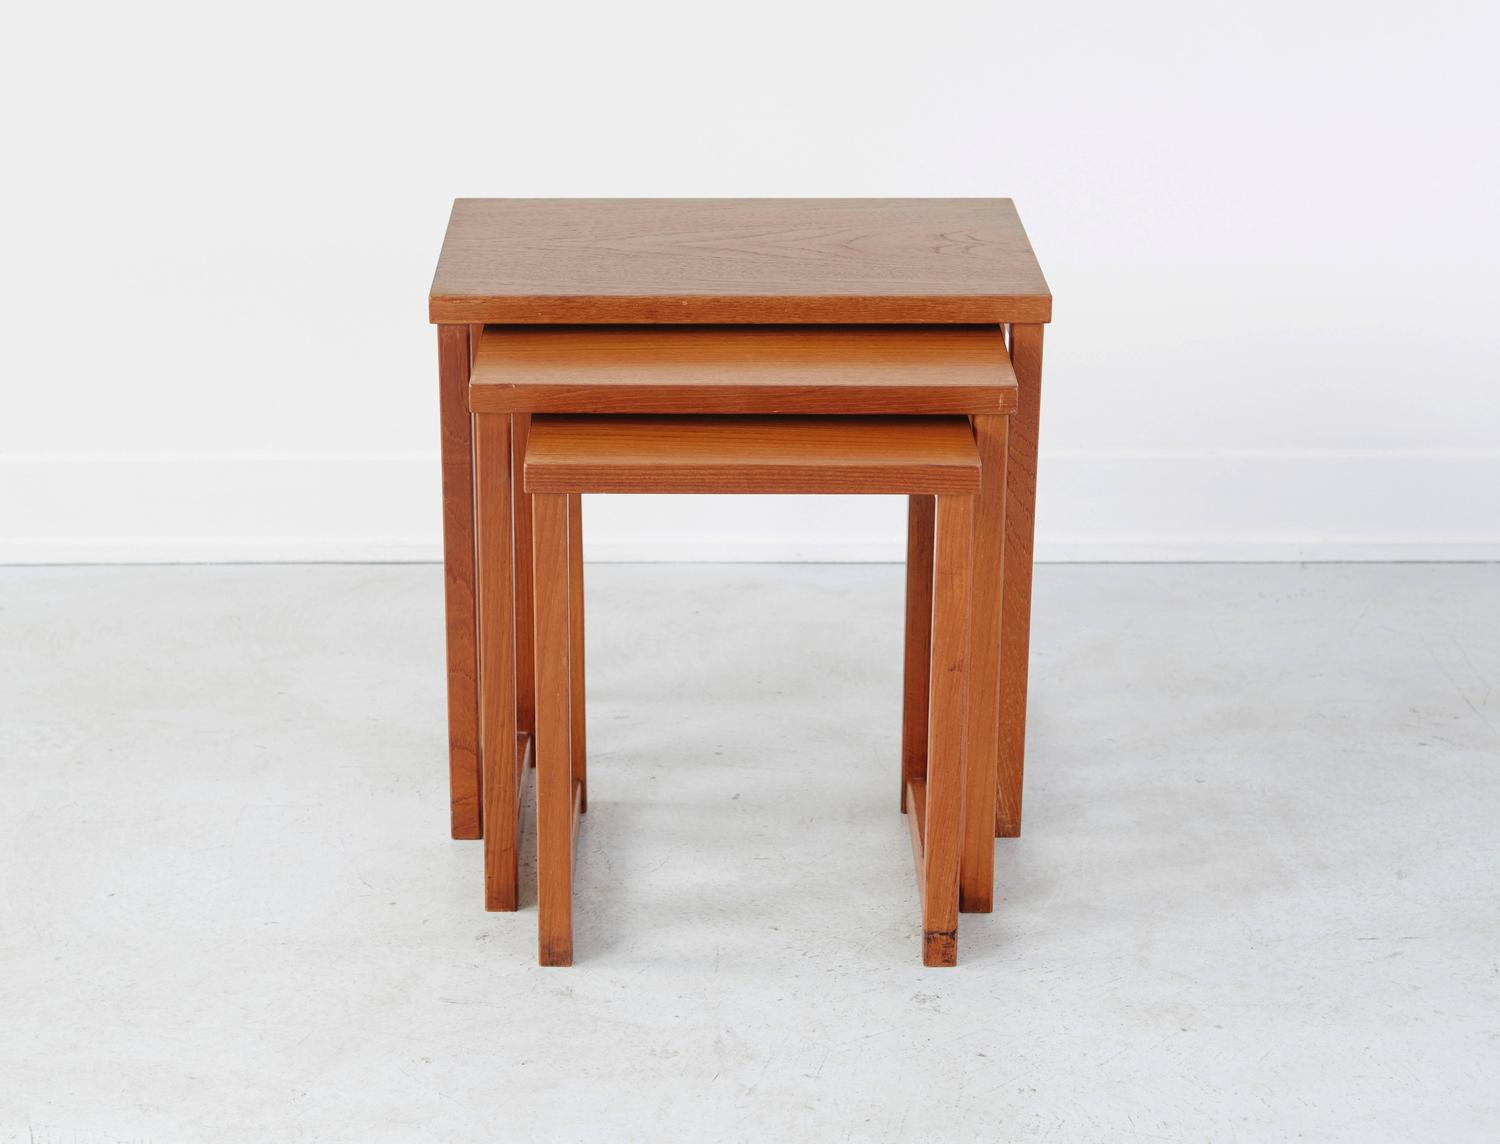 Kai Kristiansen Nesting Tables For Sale At 1stdibs. Full resolution‎  image, nominally Width 1500 Height 1144 pixels, image with #AB5220.